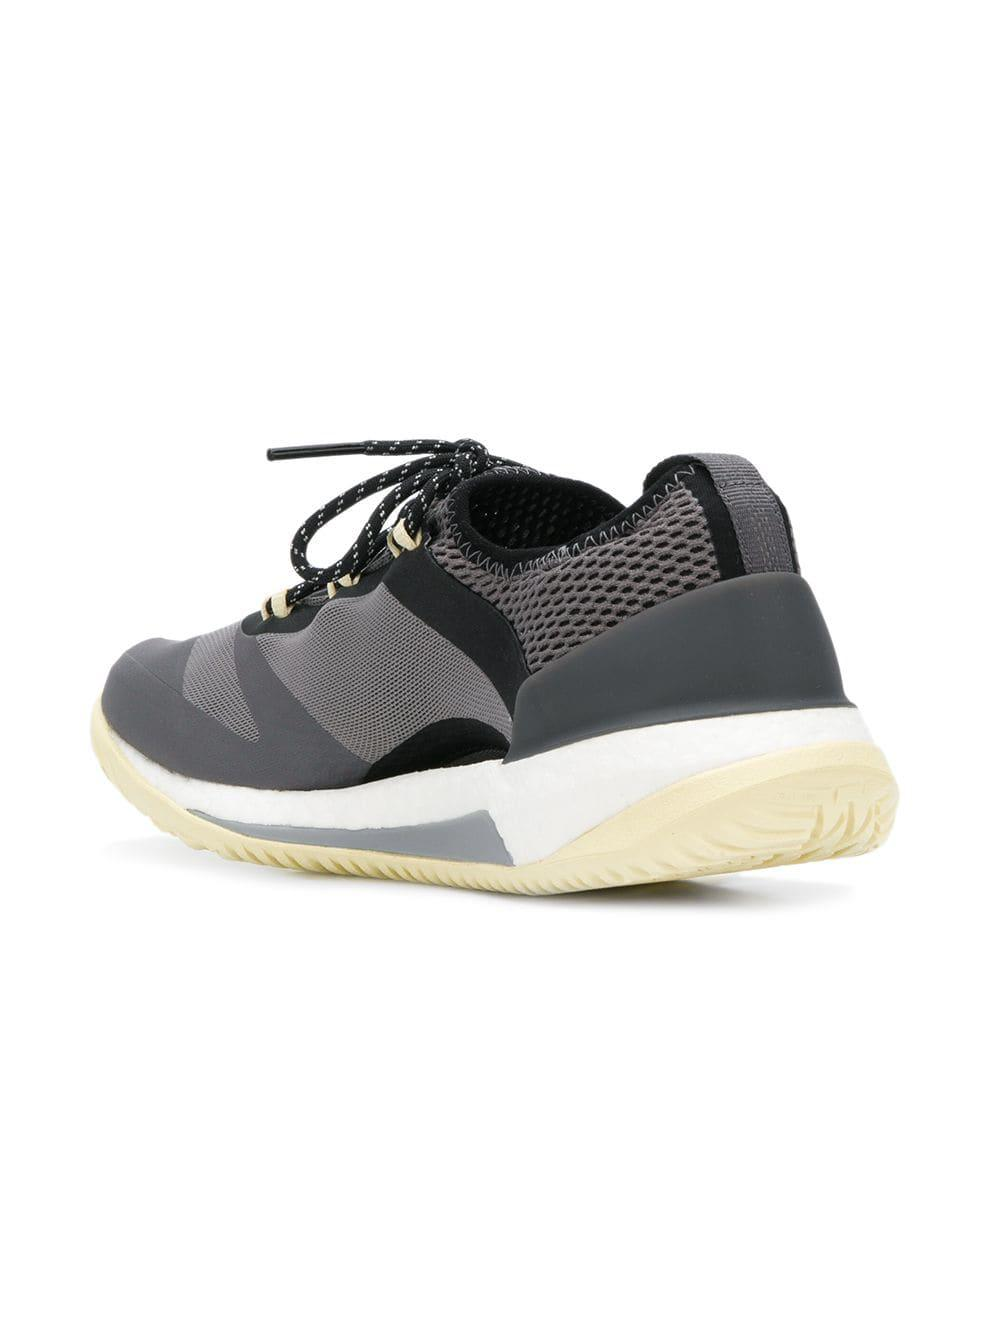 369a55a1004b Adidas By Stella Mccartney Pure Boost X Tr 3.0 Sneakers in Gray - Lyst